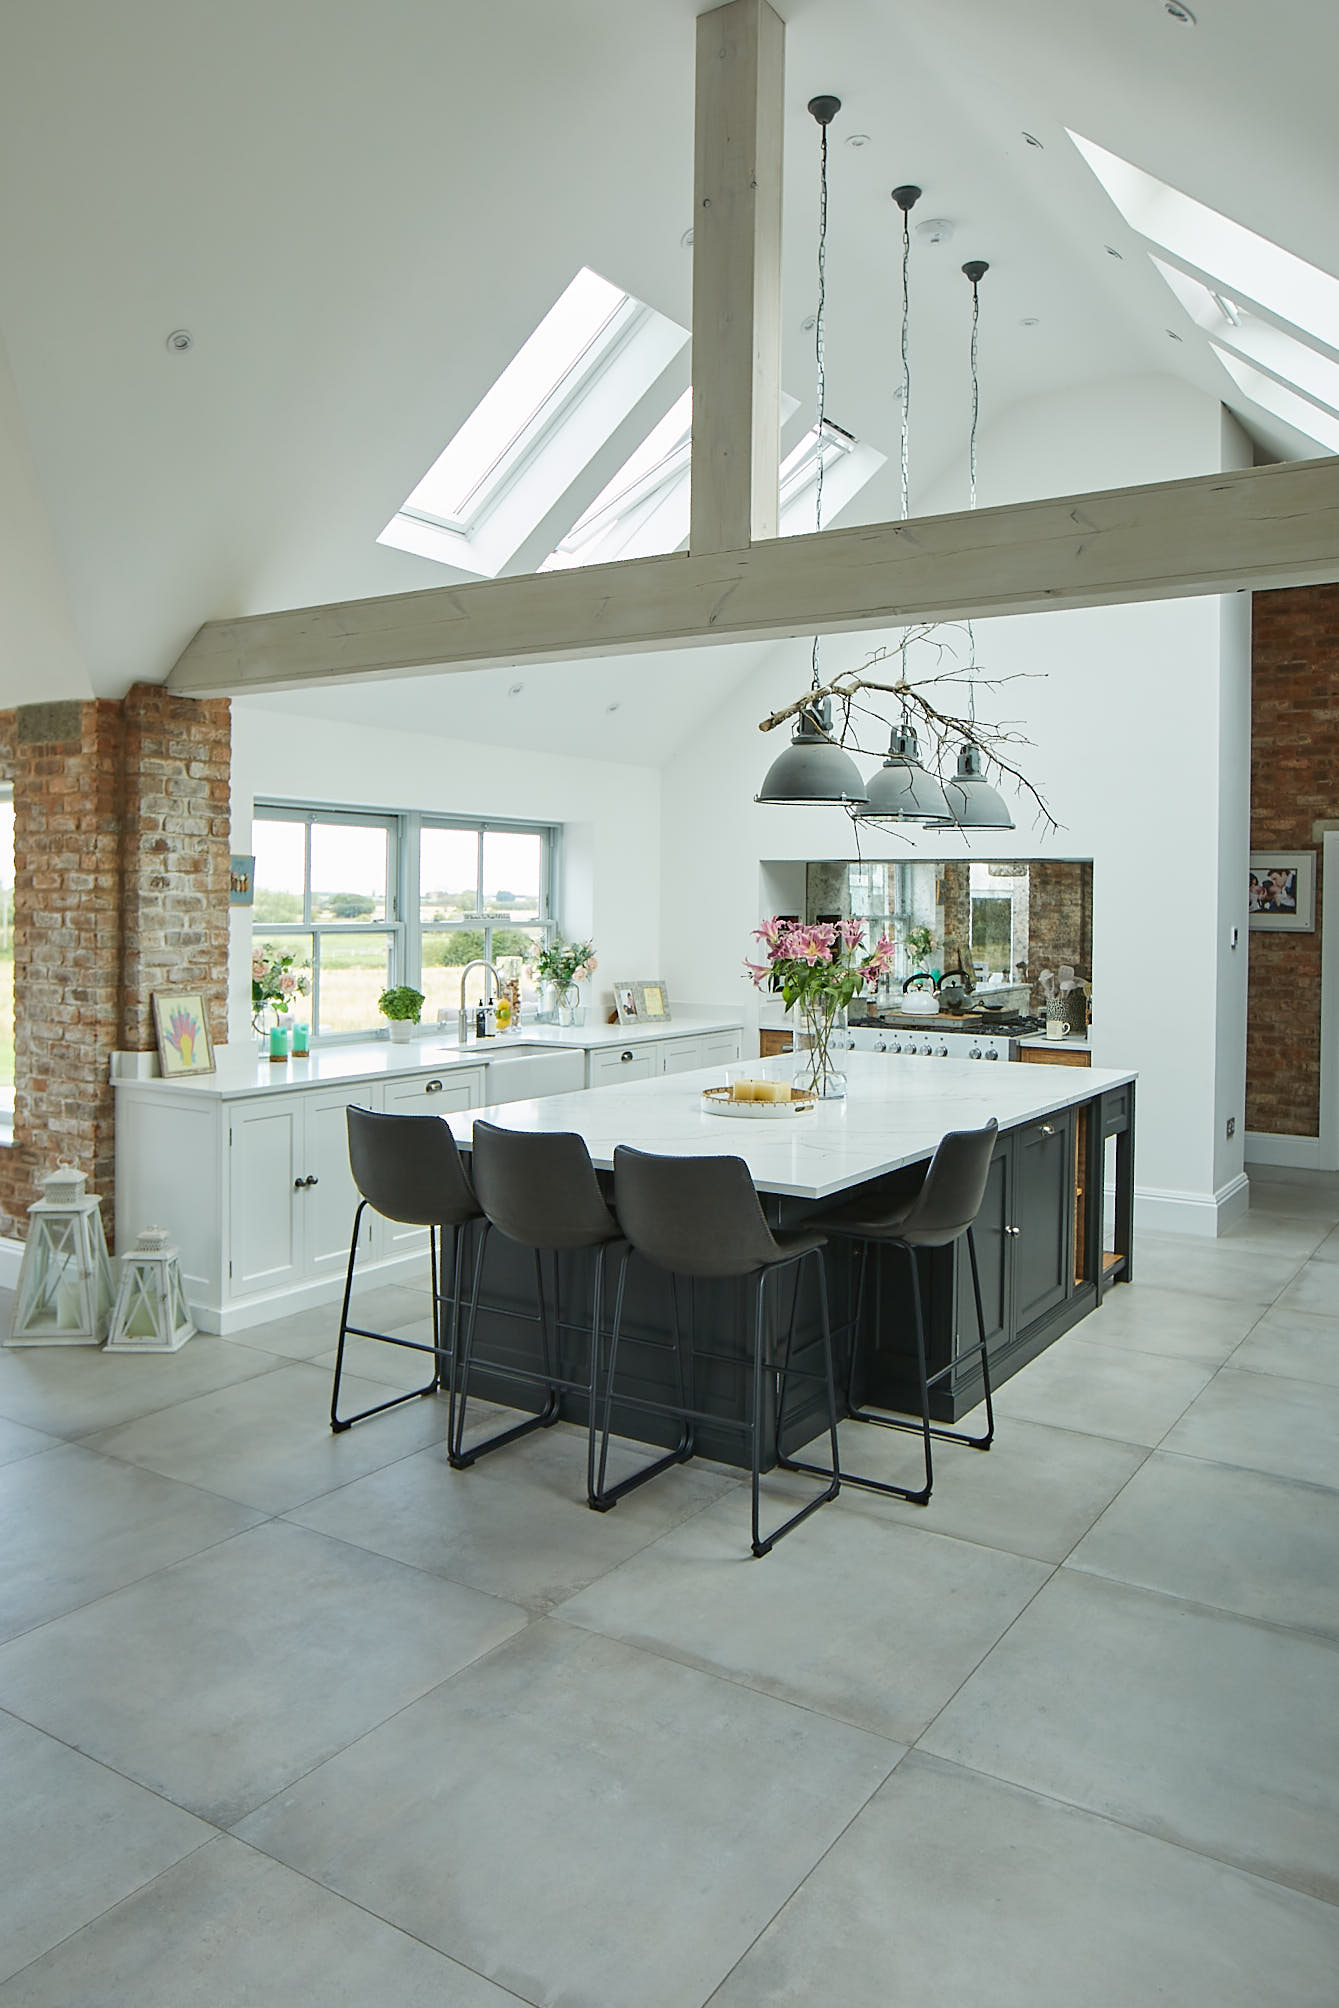 Large vaulted ceiling in open plan kitchen diner with white and black painted cabinets